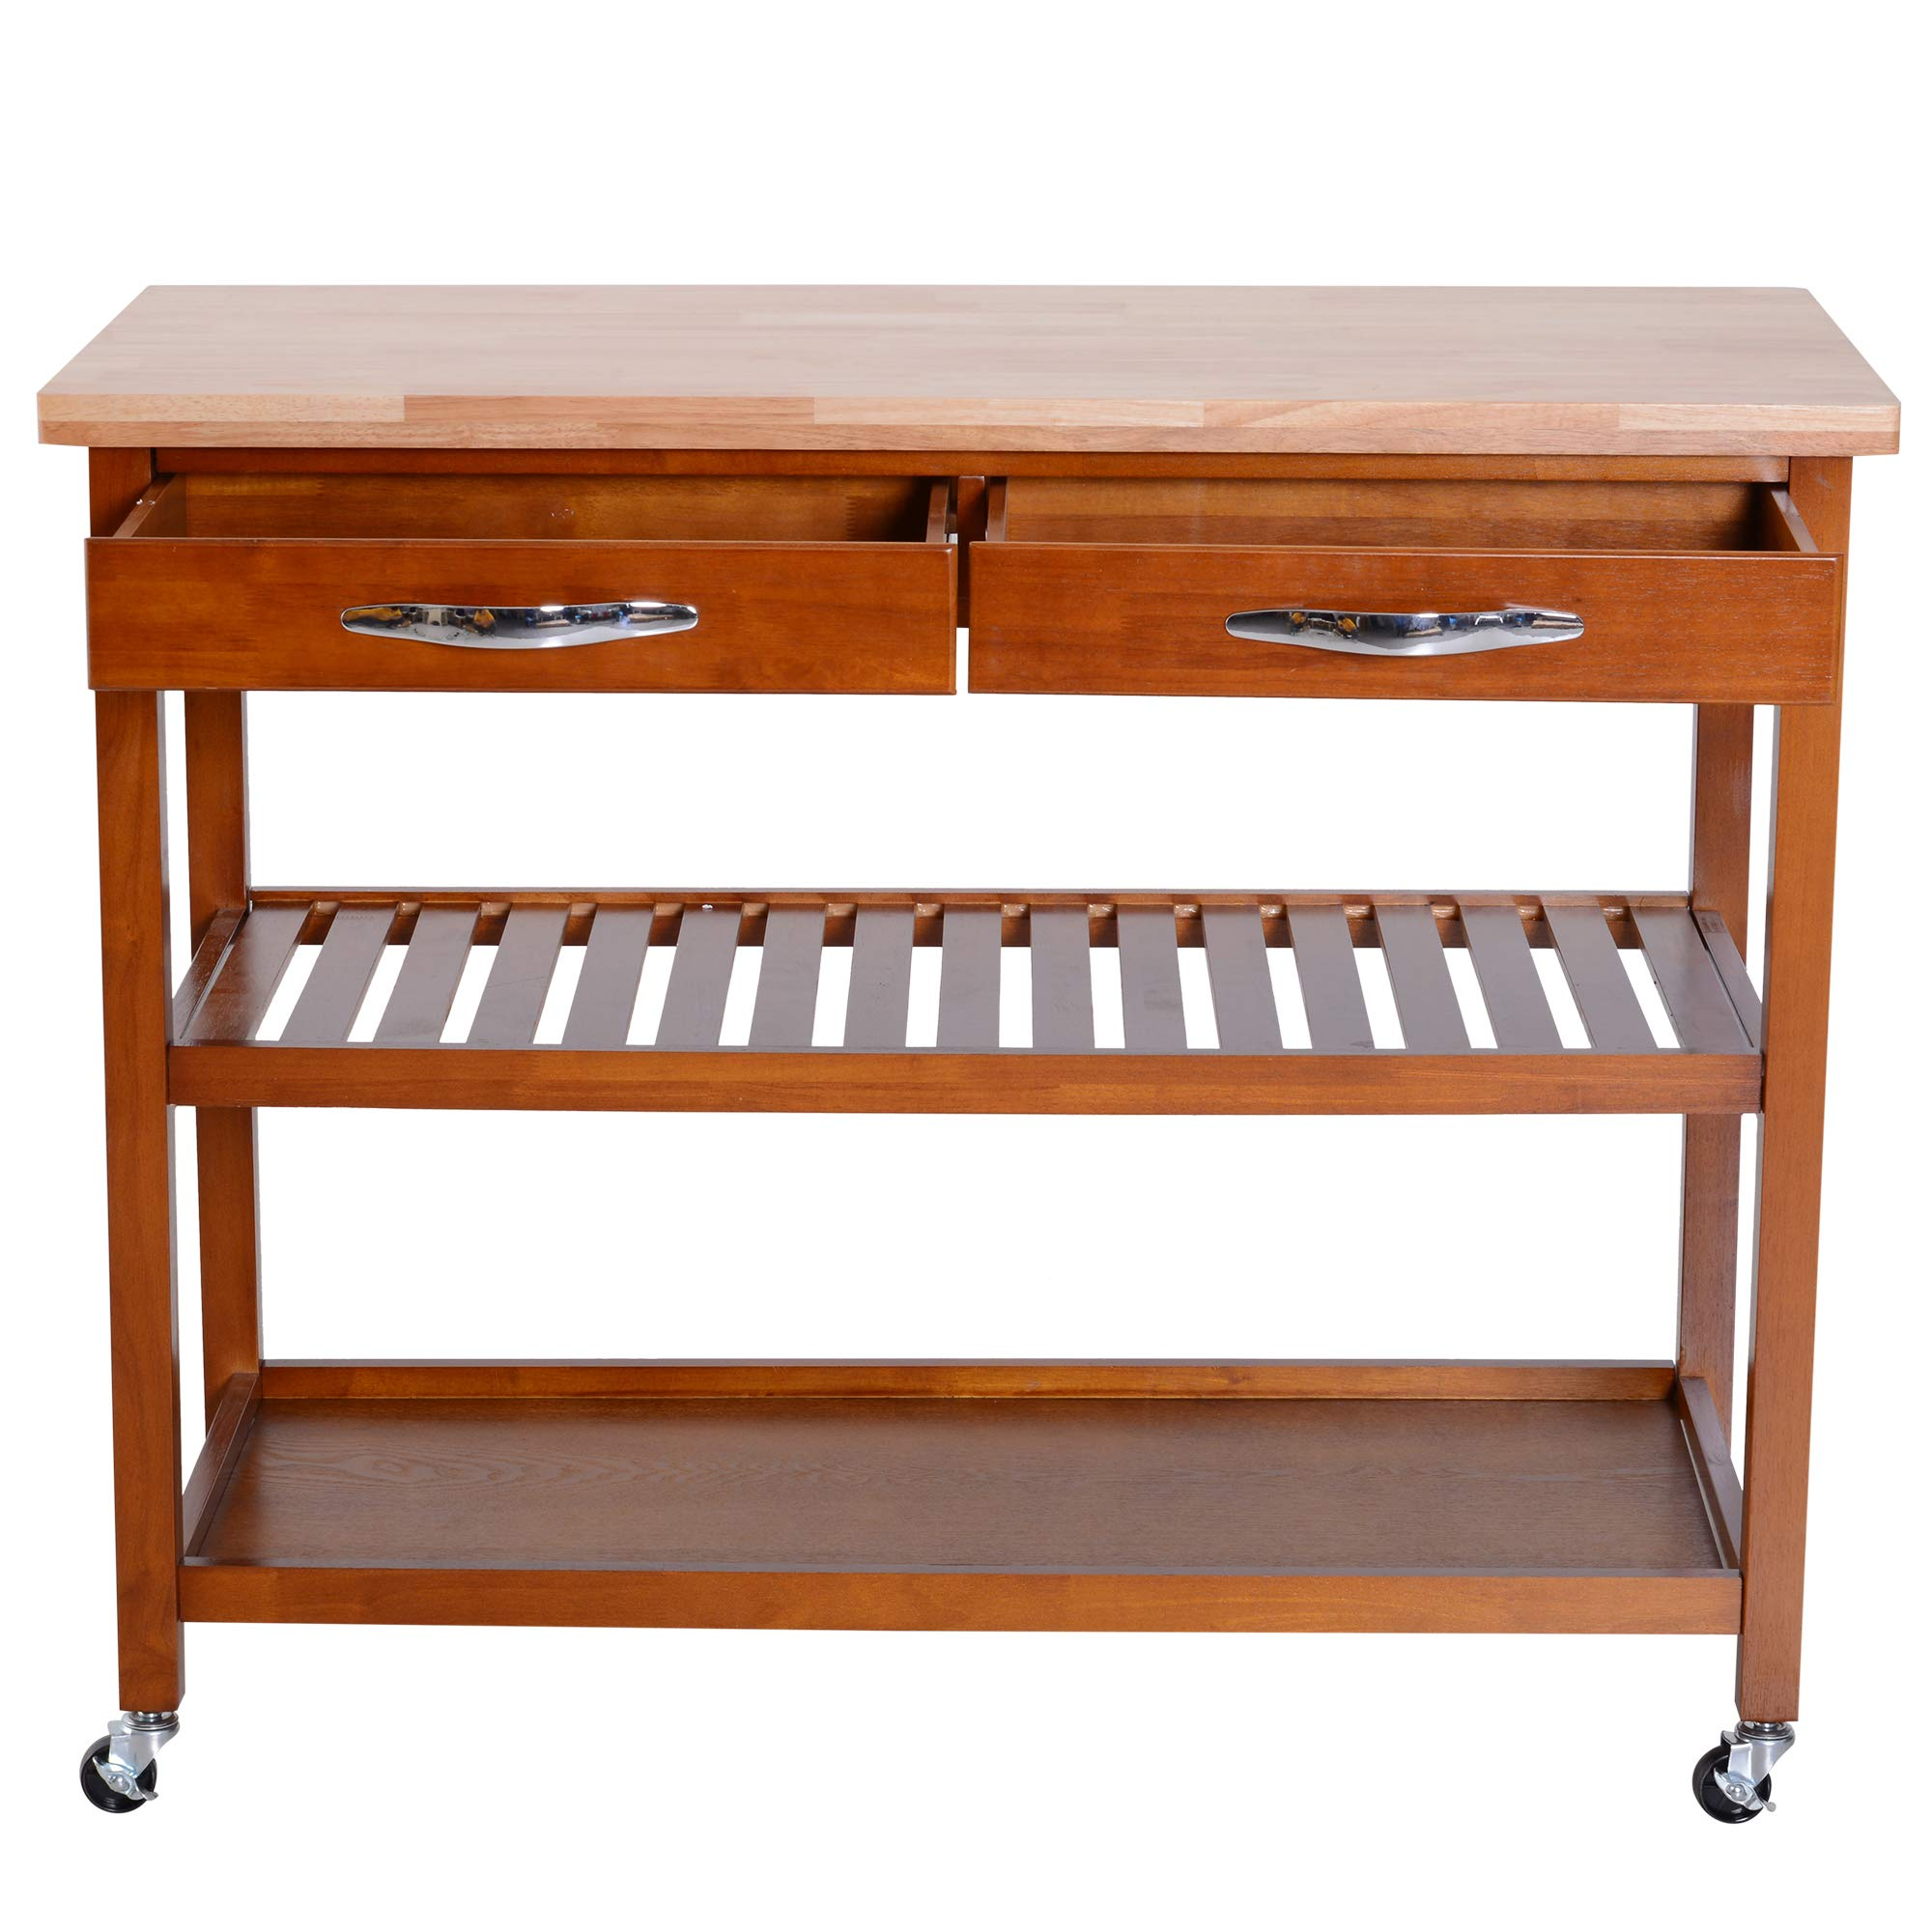 HOMCOM 44'' 3-Tier Rubberwood Kitchen Island Cart on Wheels - Brown by HOMCOM (Image #4)